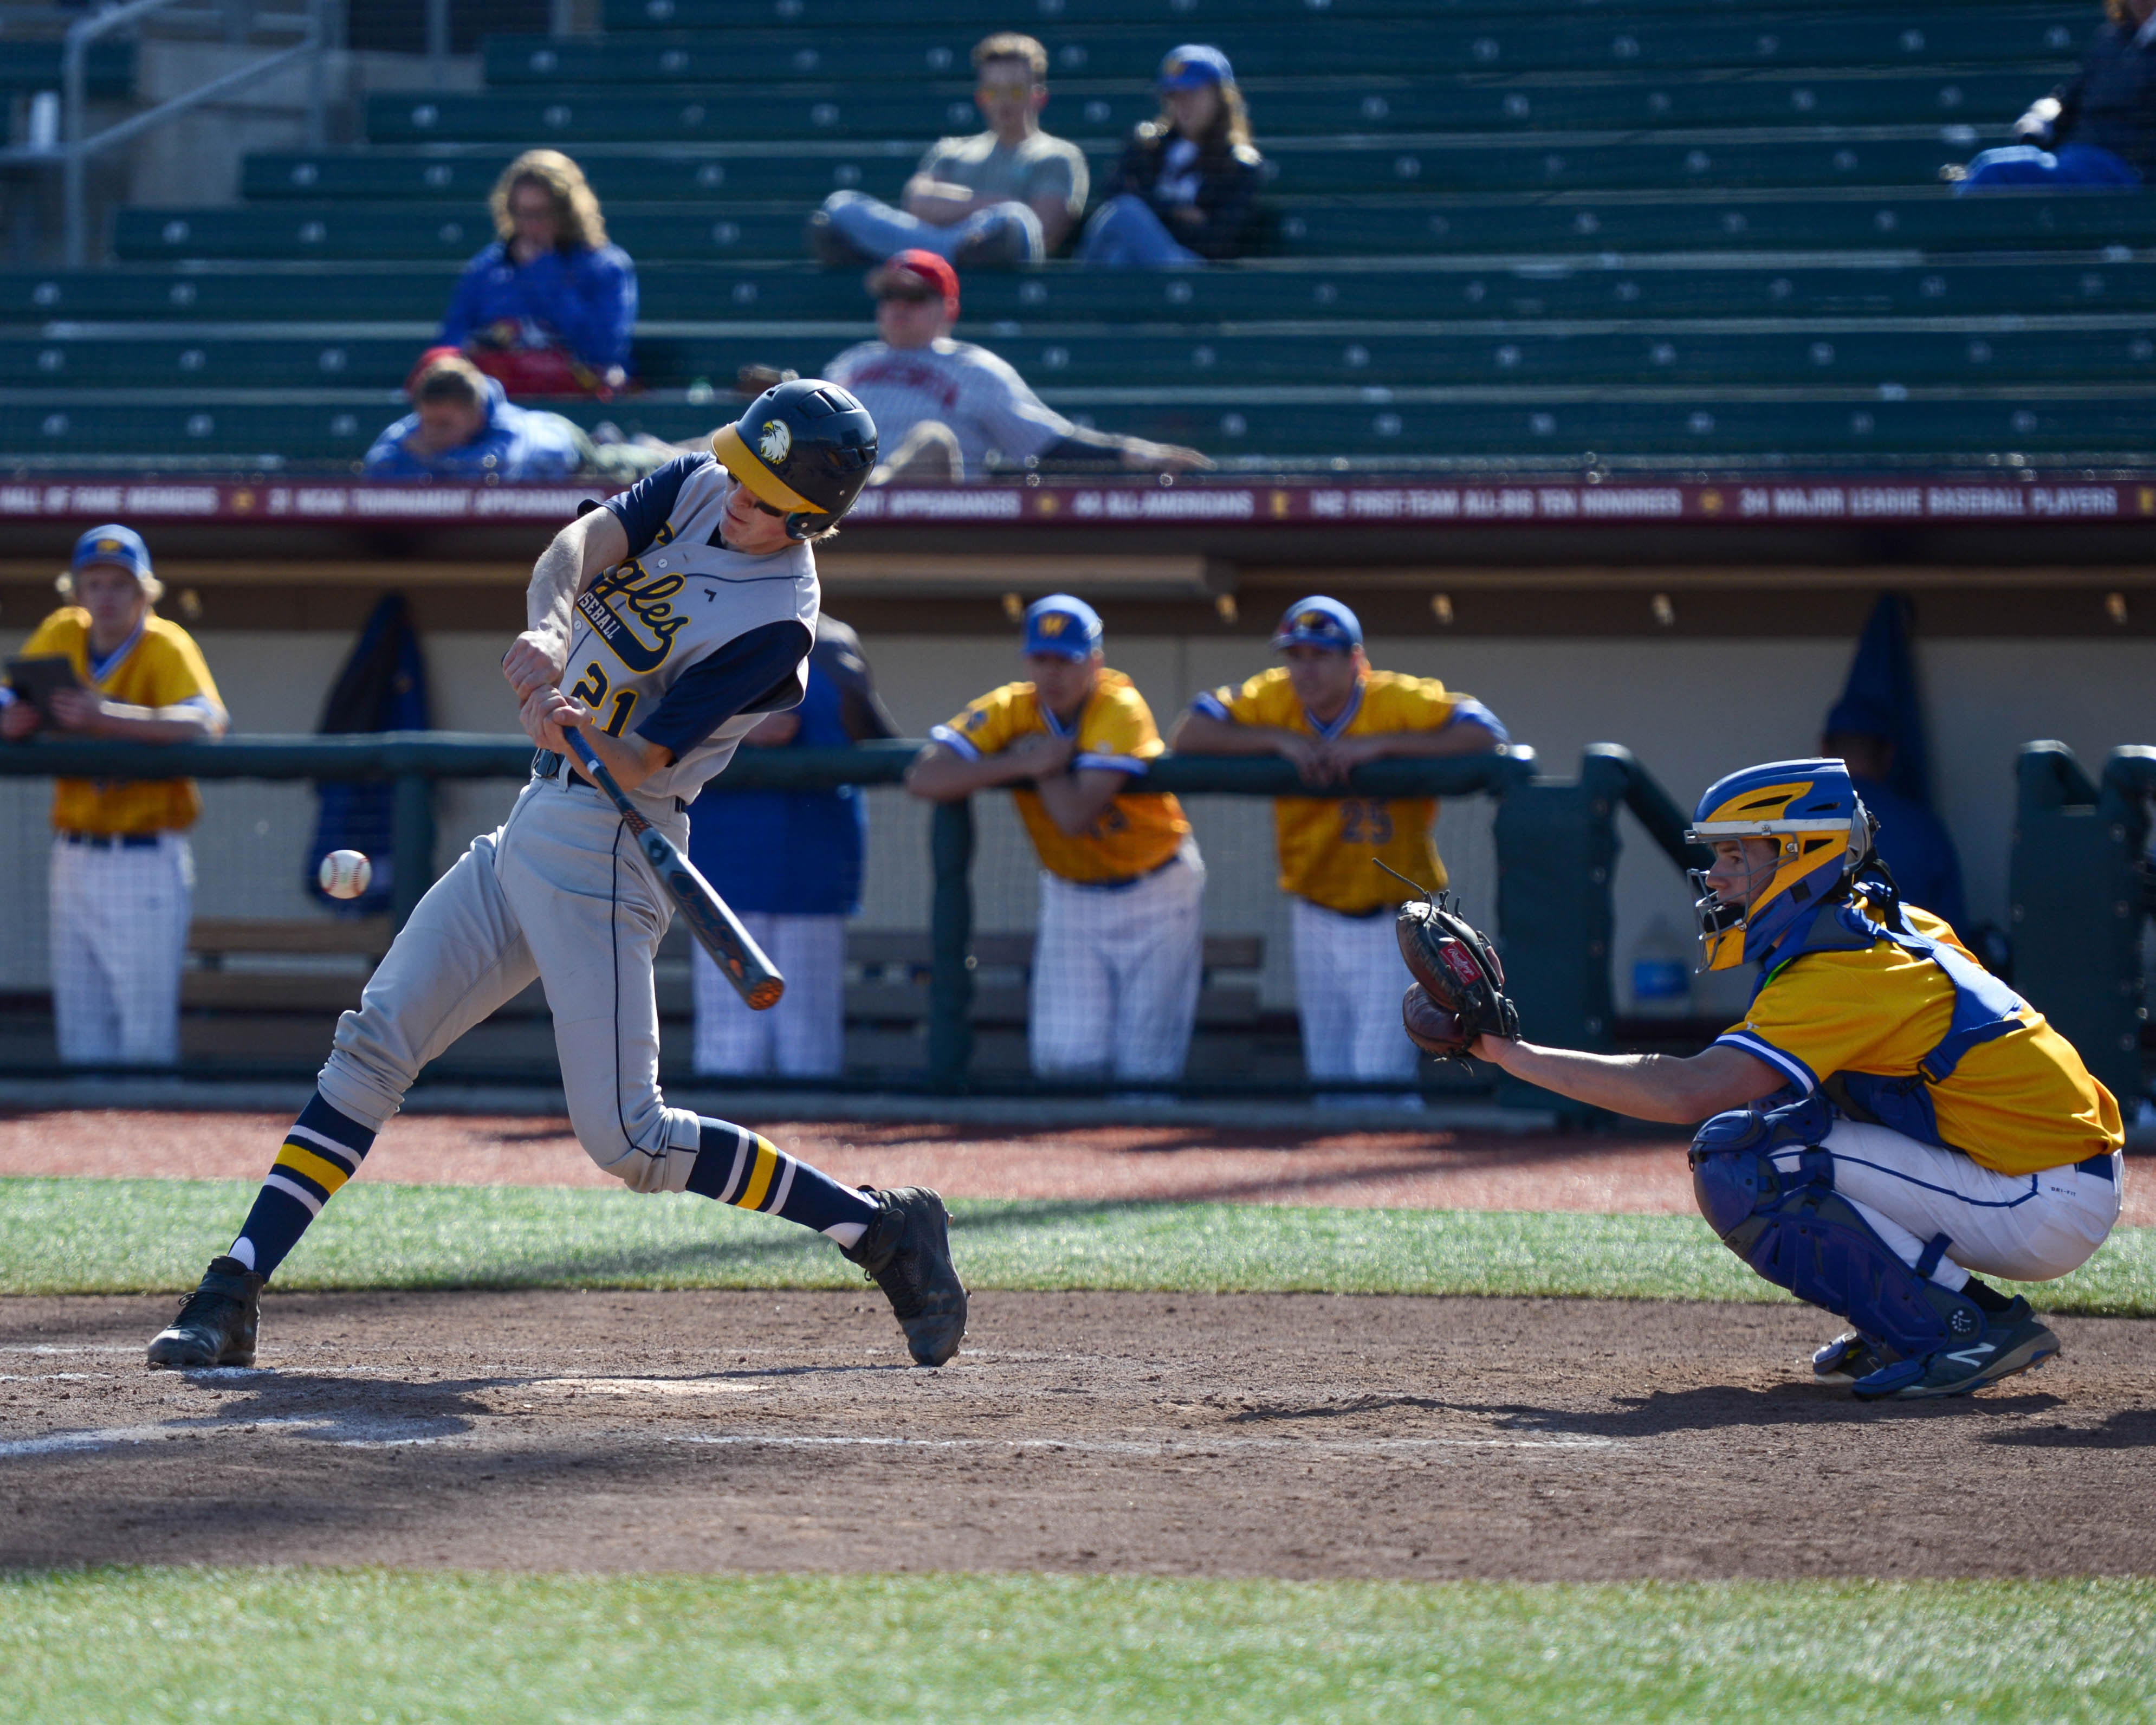 Totino-Grace's Eric Rataczak (21) swings at a pitch against Wayzata at Siebert Field on Saturday. The Eagles defeated the Trojans 7-4. Photo by Carter Jones, SportsEngine